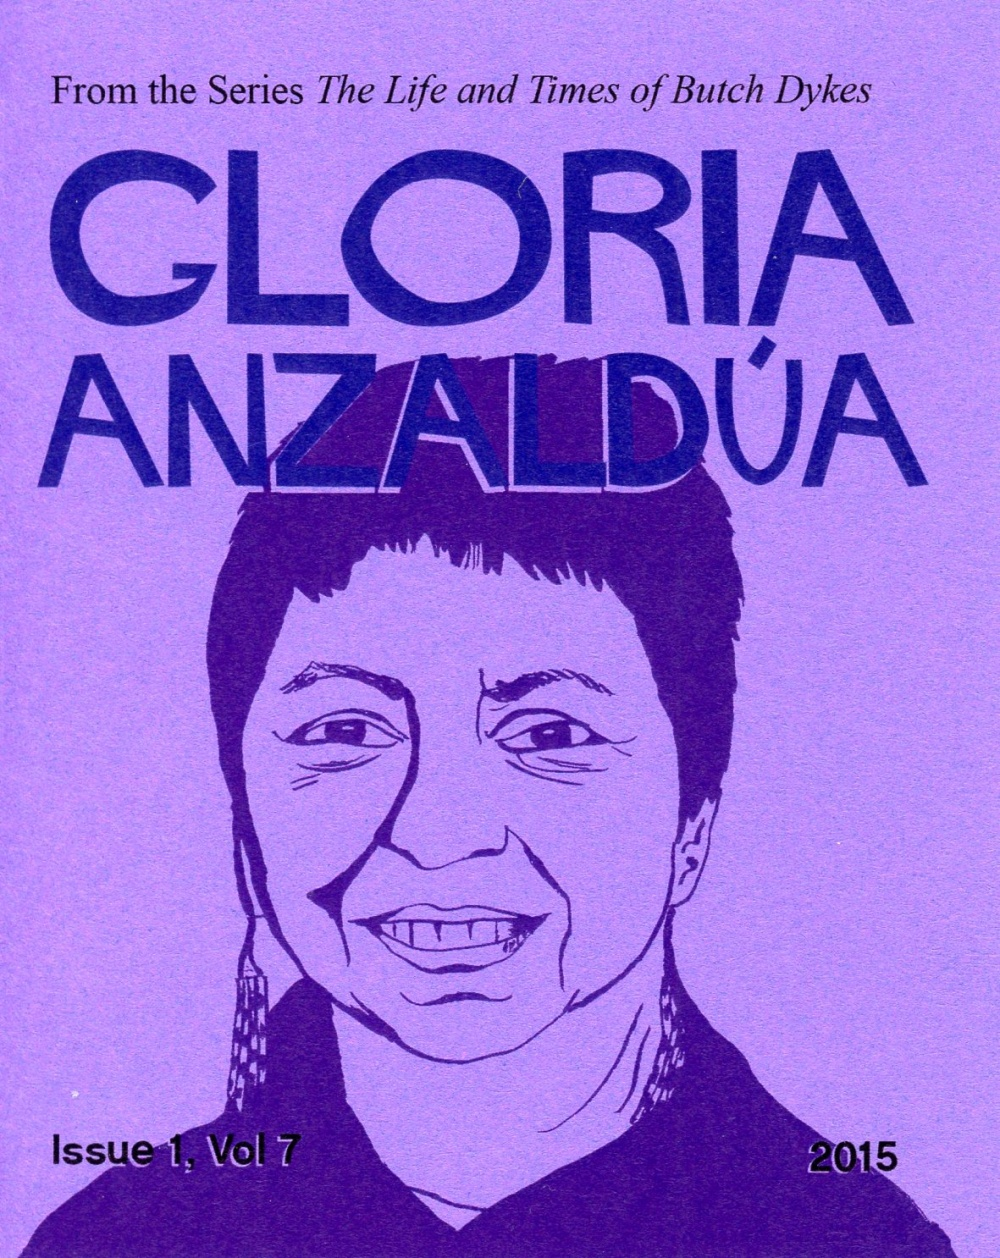 Cover of Gloria Anzaldua zine - an illustration of the writer